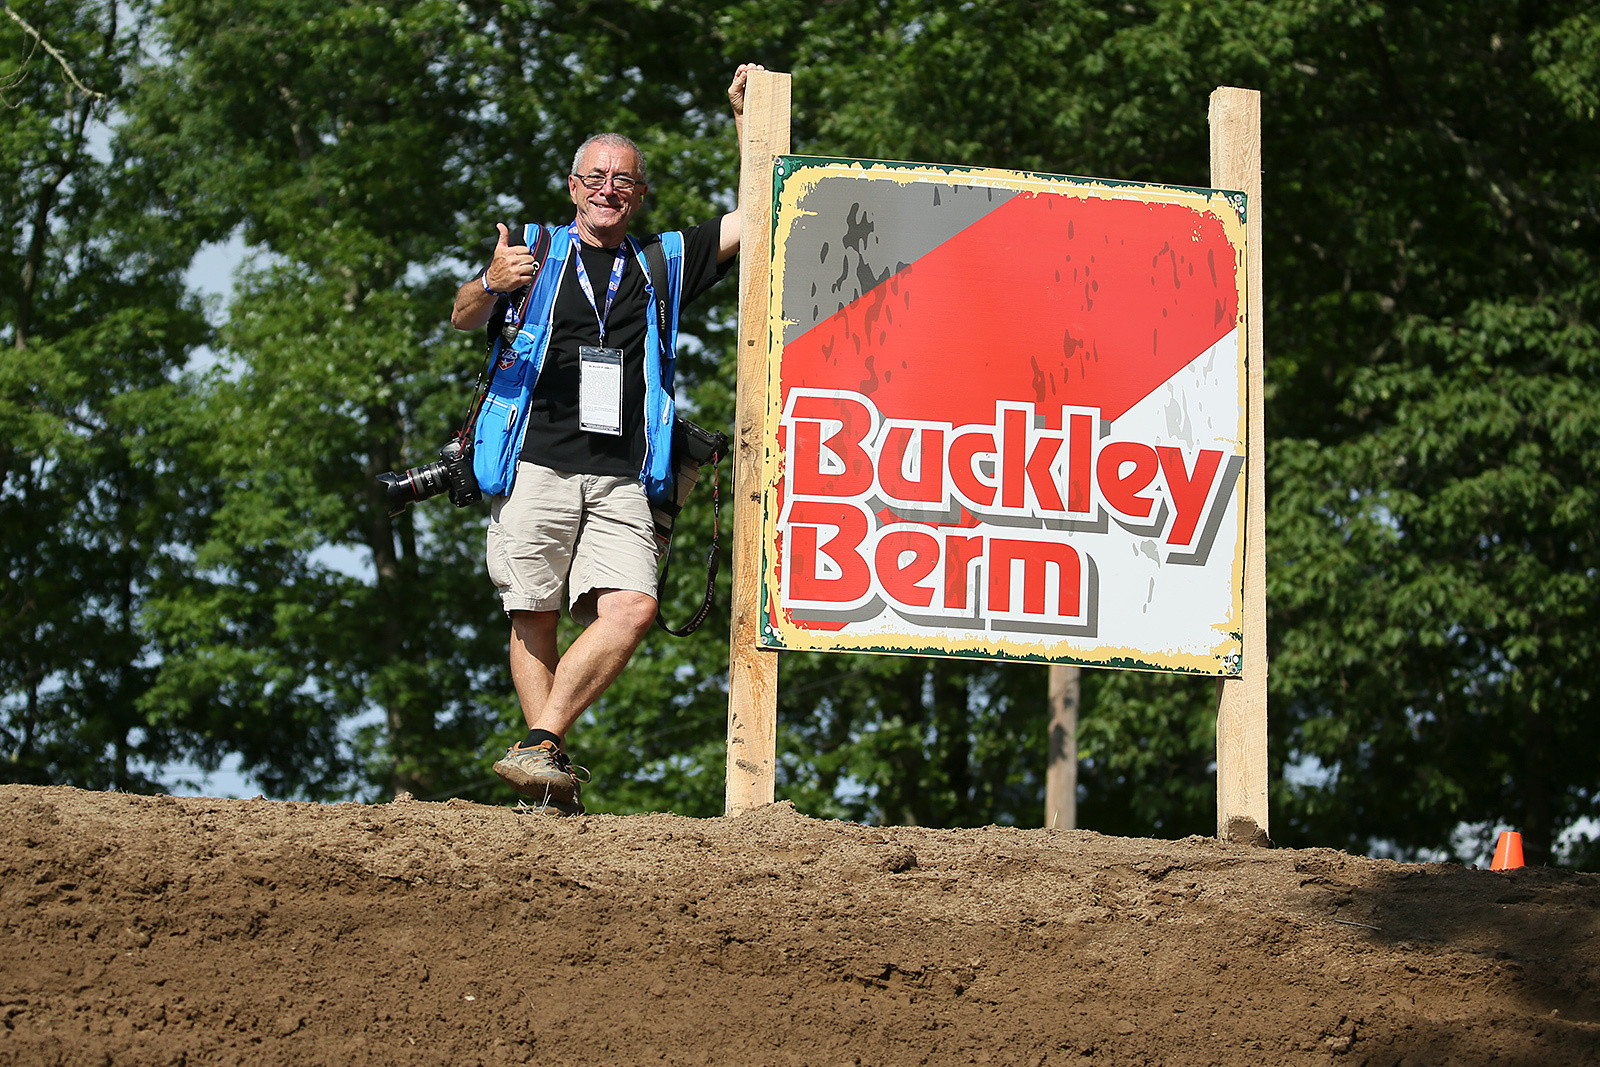 It's always good to see Paul Buckley, who made this section of Southwick famous by shooting some legendary photos there. Having a part of a track named for you? That's great. Seeing it commemorated? That takes it up a few notches to awesome.